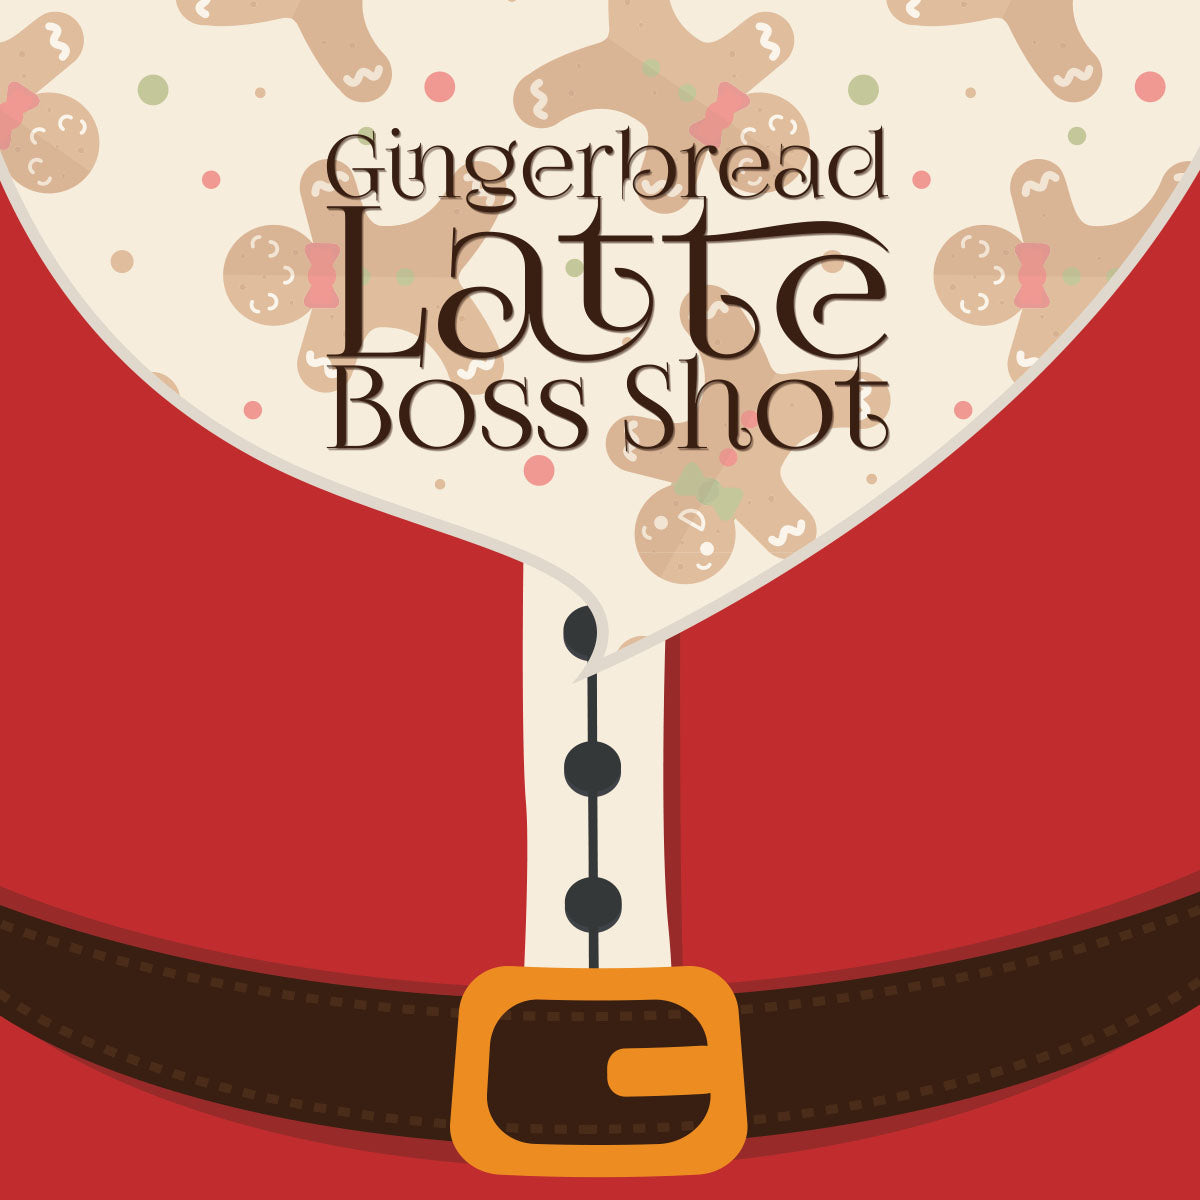 Gingerbread Latte - Flavour Boss